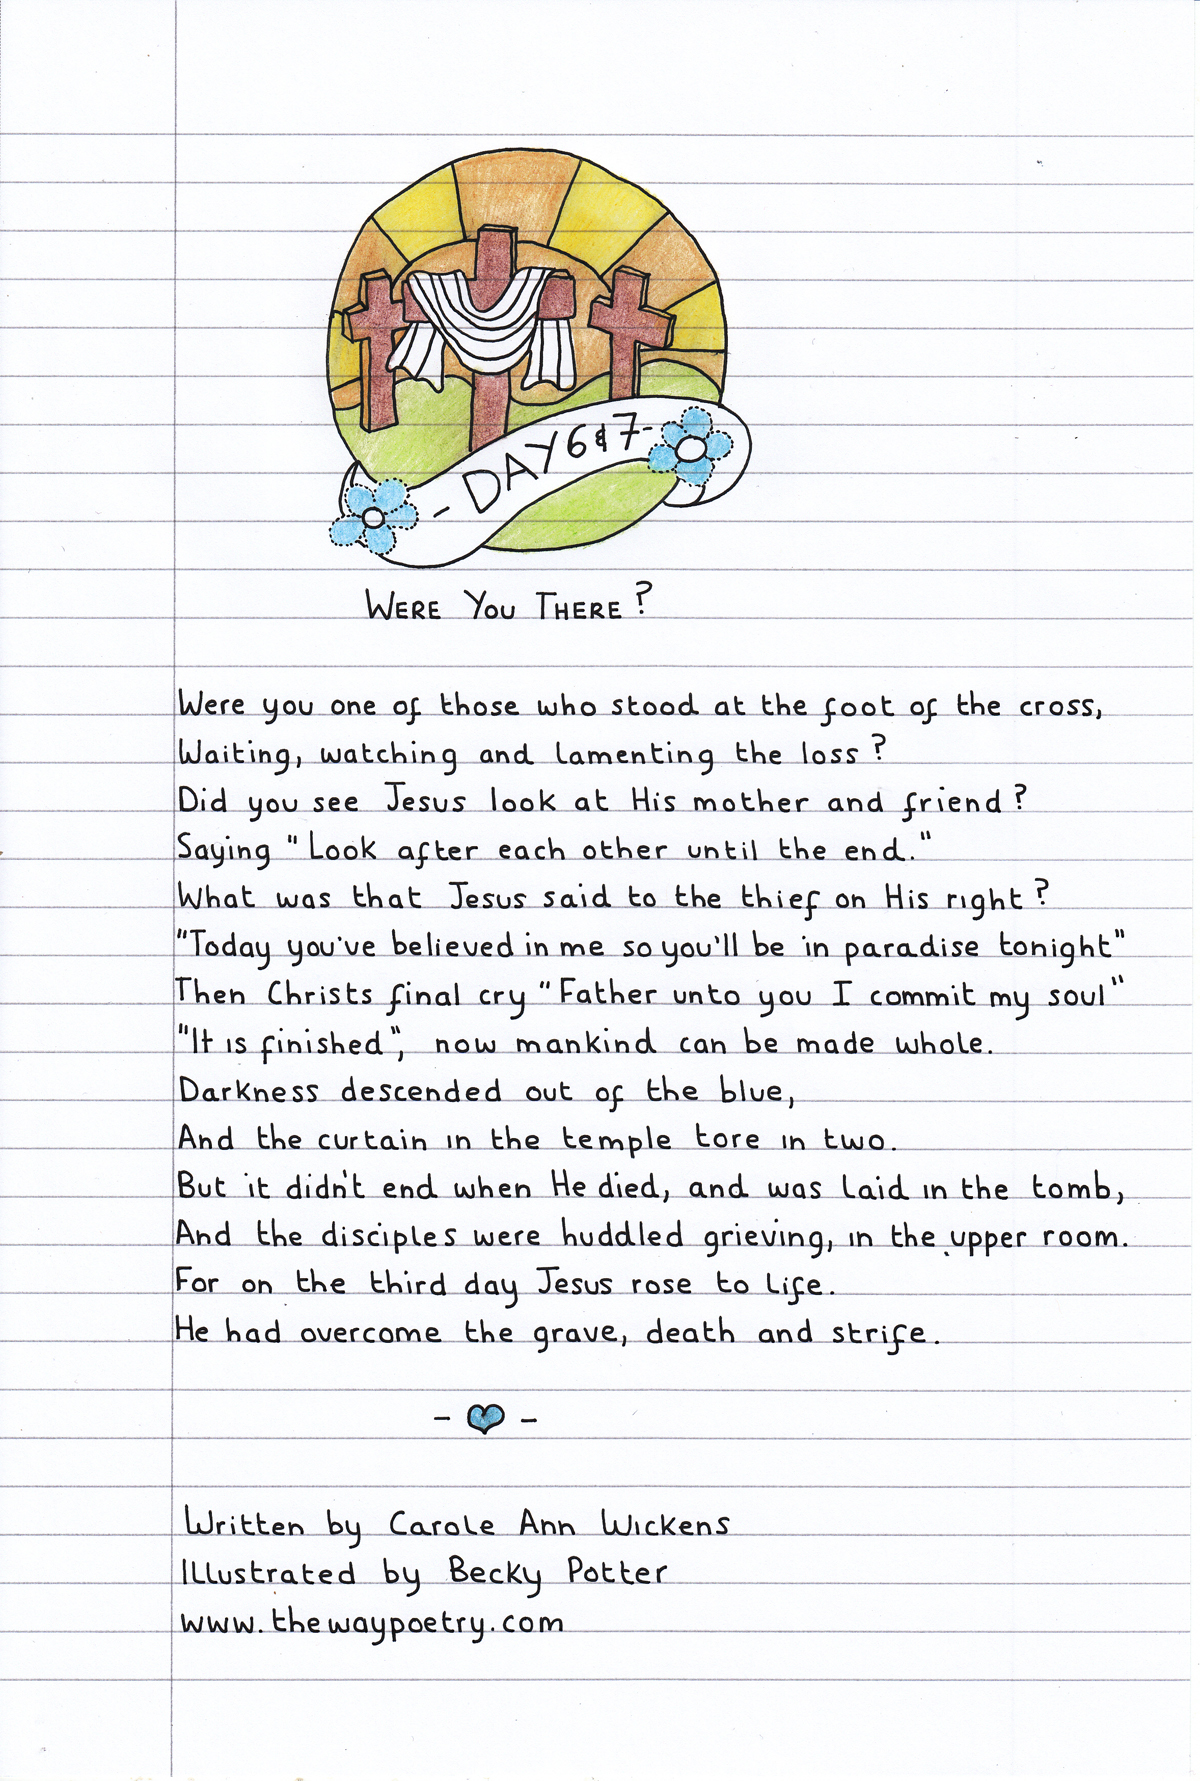 Were You There? (Easter Week – Day 6 & 7) by Carole Ann Wickens